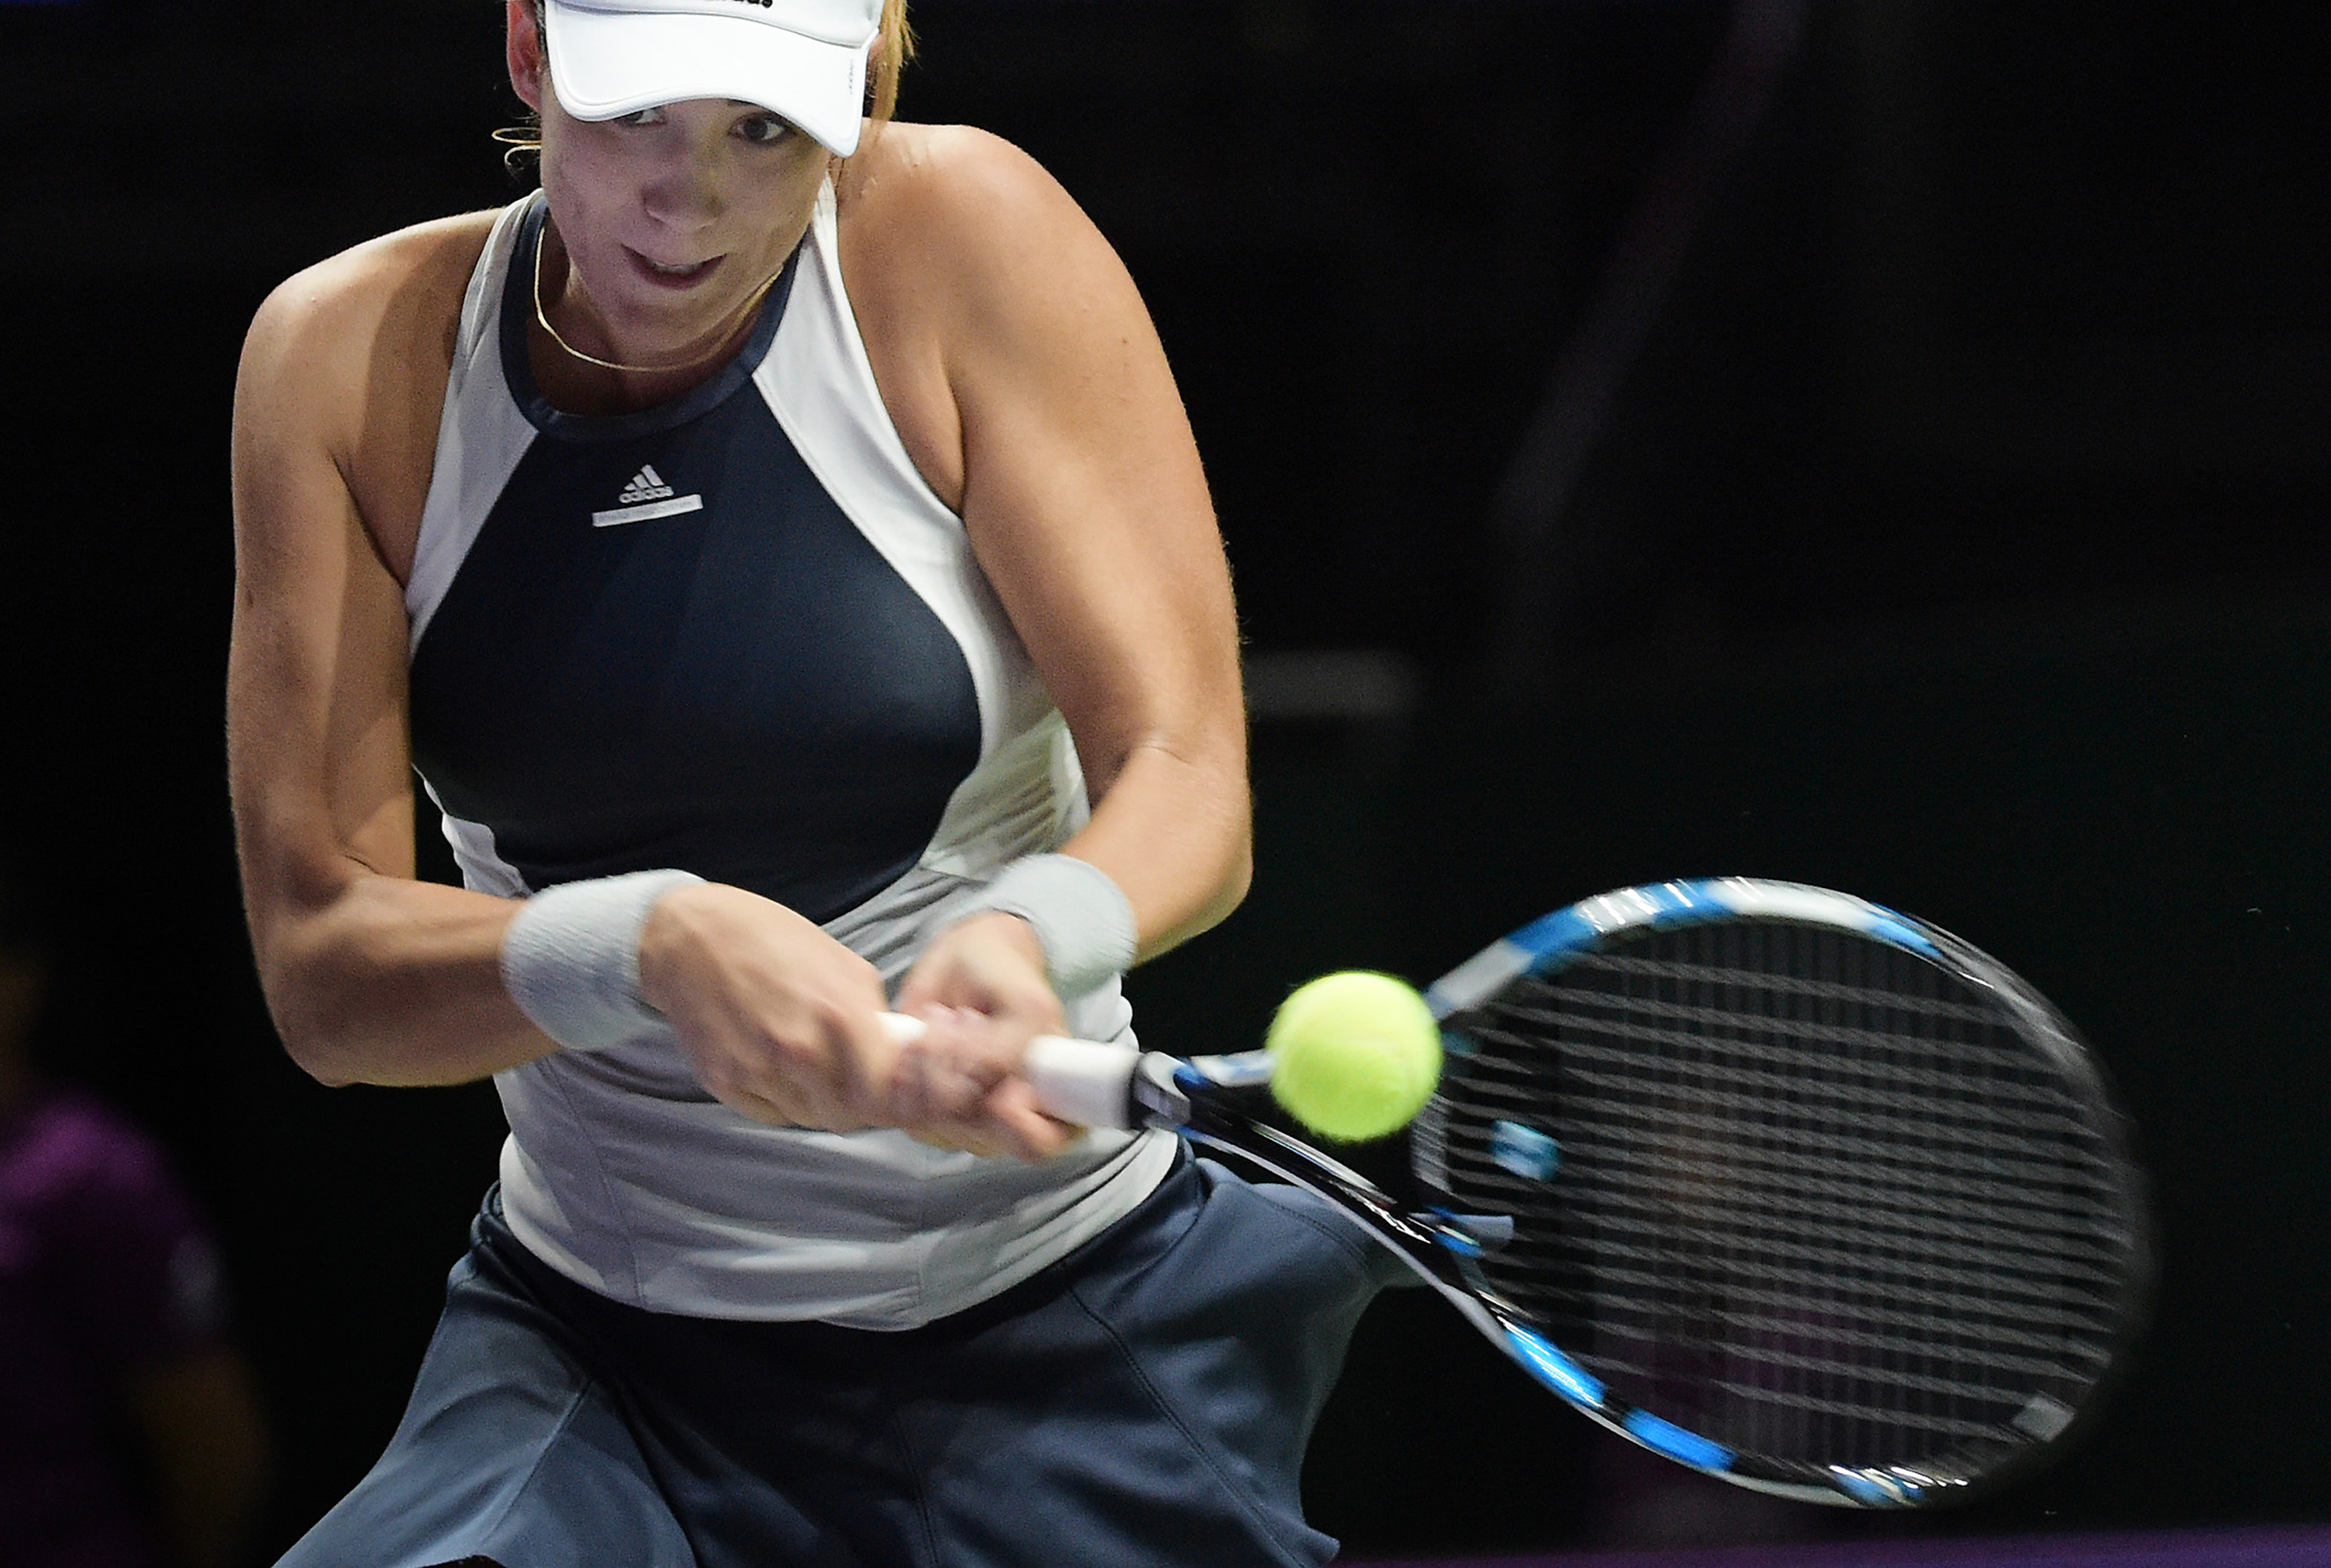 Garbine Muguruza of Spain makes a backhand return against Petra Kvitova of the Czech Republic during their singles match at the WTA tennis finals in Singapore on Friday, Oct. 30, 2015.  (AP Photo/Joseph Nair)